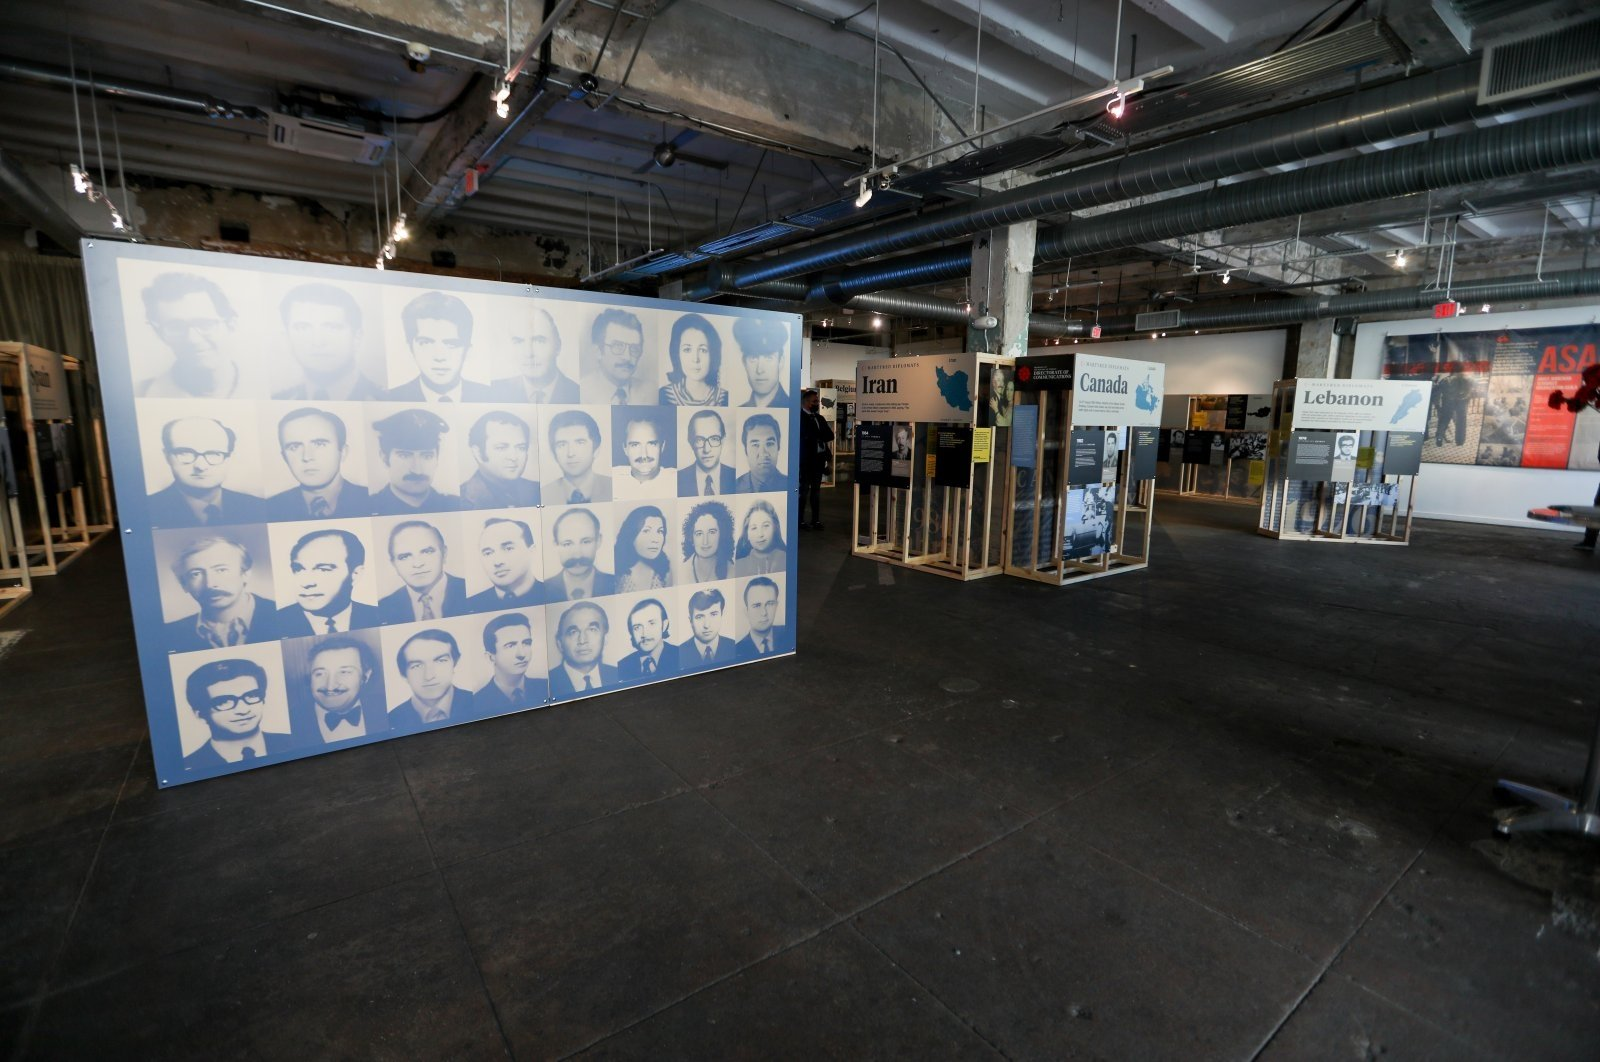 Turkey's Directorate of Communications has opened an exhibition in the United States' capital in memory of Turkish diplomats killed by Armenian terrorists, Washington, D.C., U.S., May 18, 2021. (AA Photo)